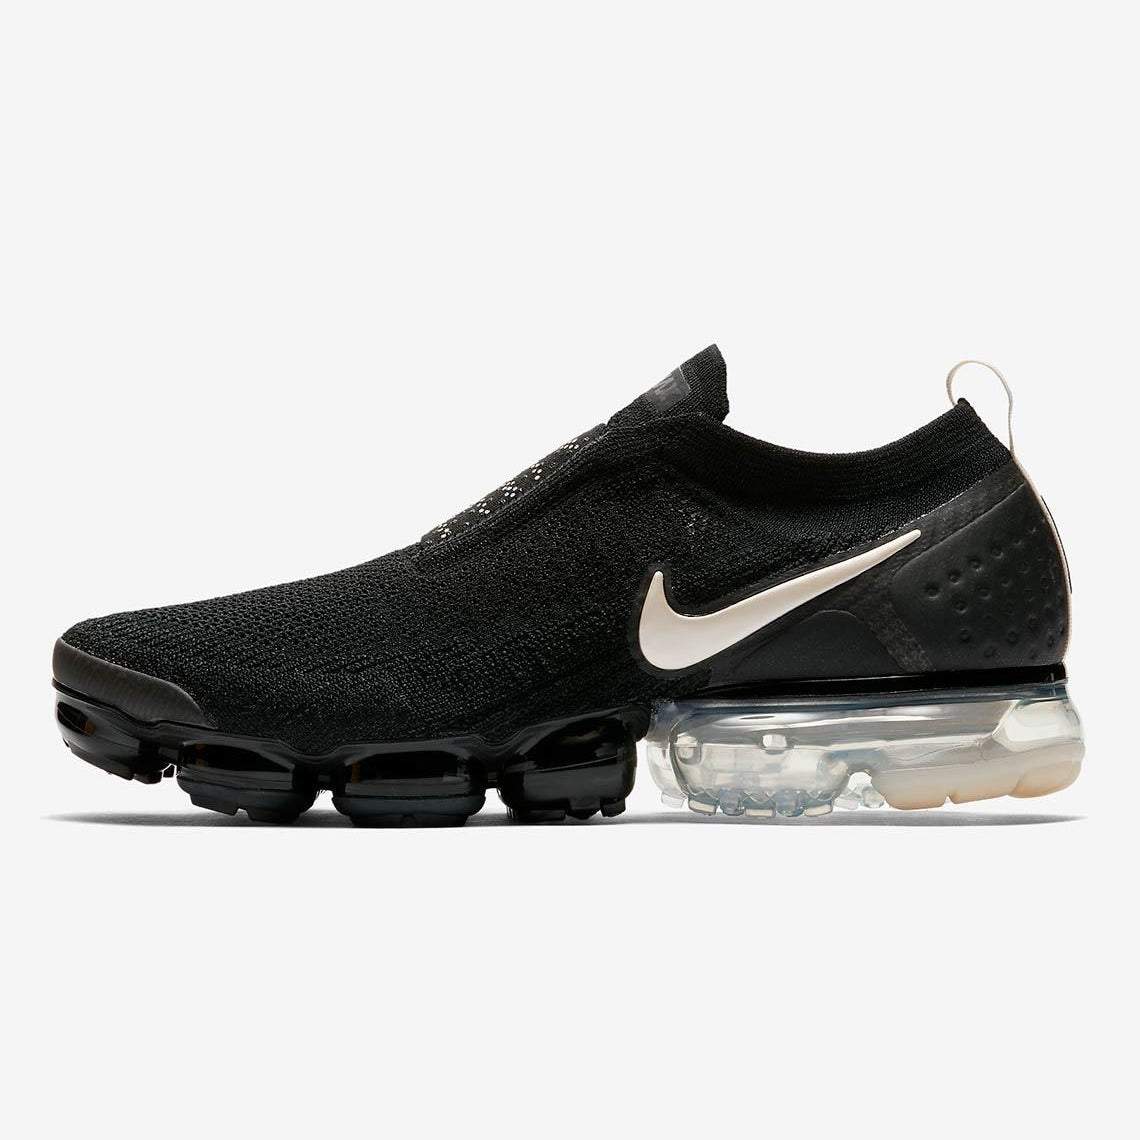 23e1141038c89 NIKE AIR VAPORMAX FK MOC 2 BLACK/LIGHT CREAM-WHITE-THUNDER GREY ...